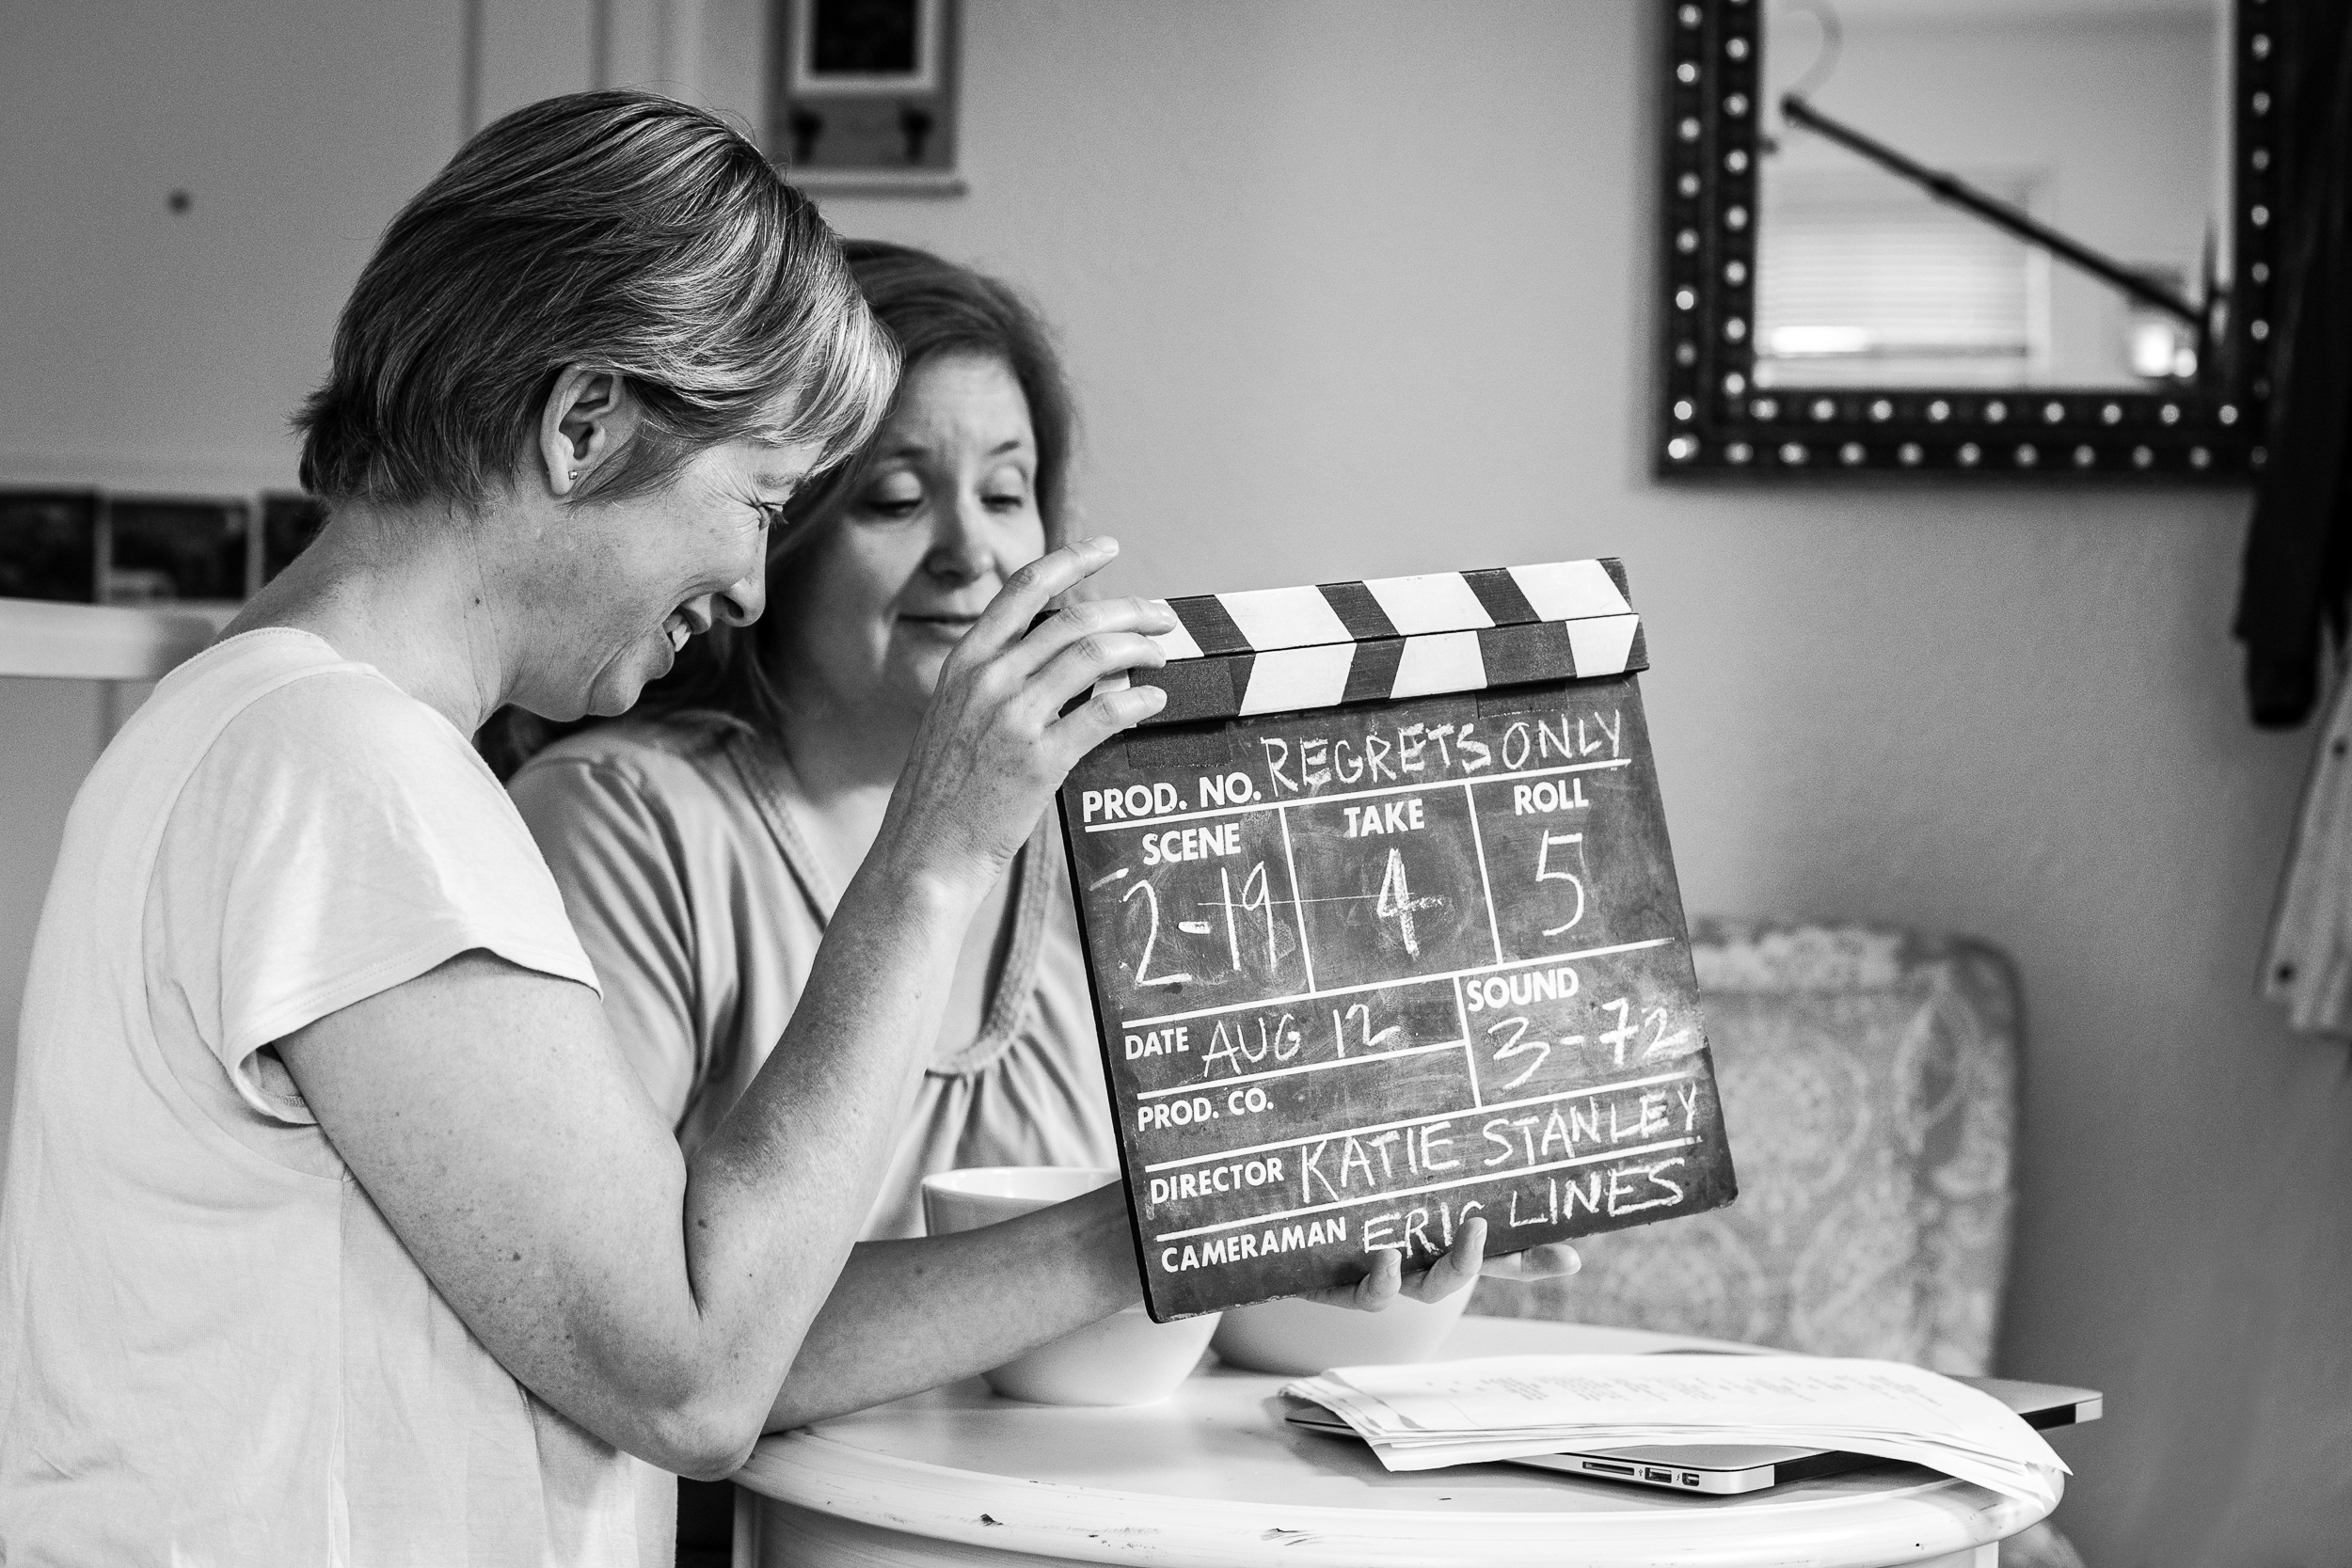 Day 4: Chrissy Steele and Trish Brown with the clapboard.